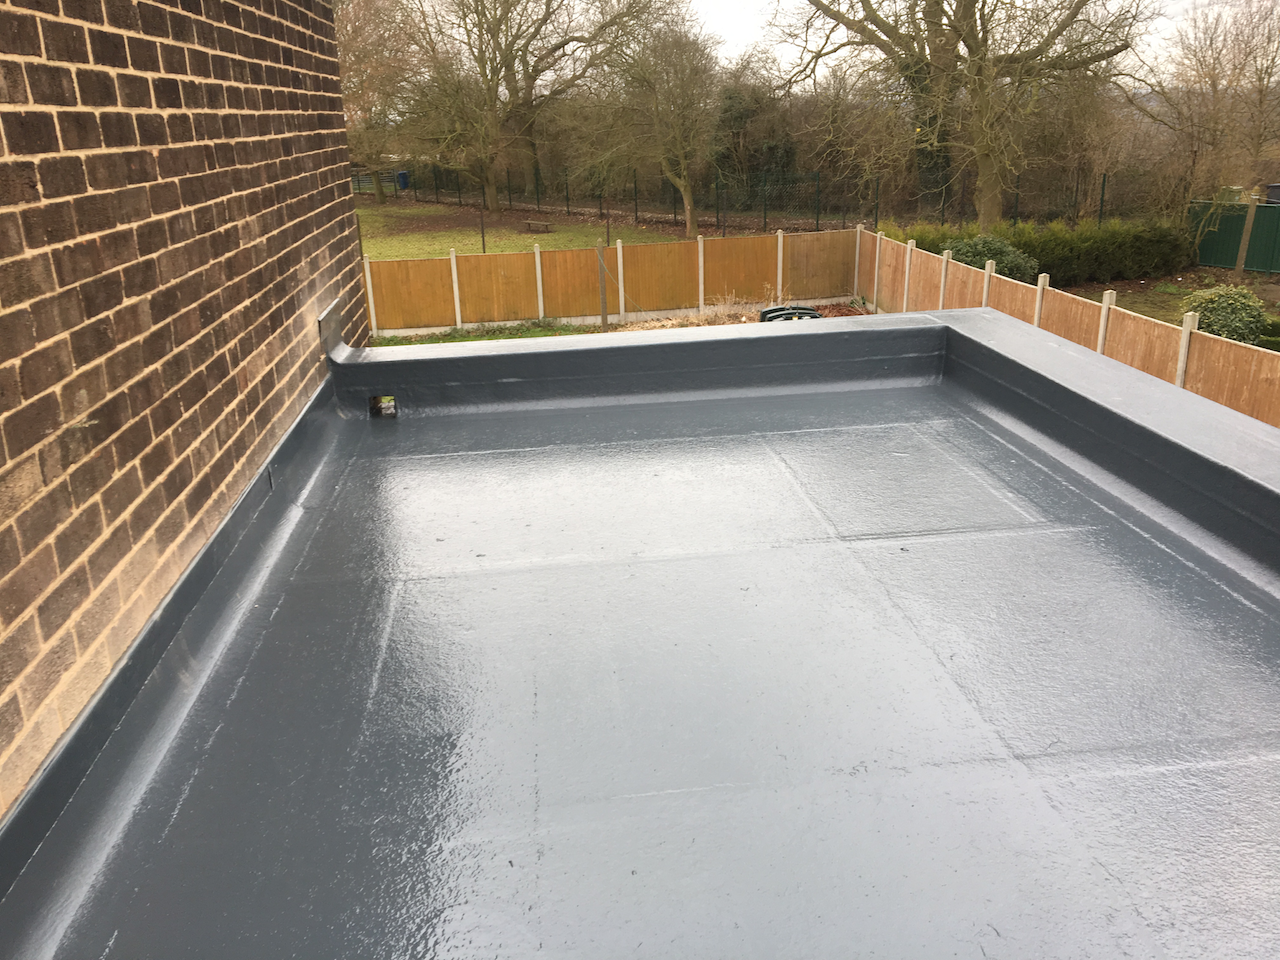 https://www.bluedotroofing.uk/wp-content/uploads/2018/02/grp-flat-roof-marton-lincolnshire-19.png